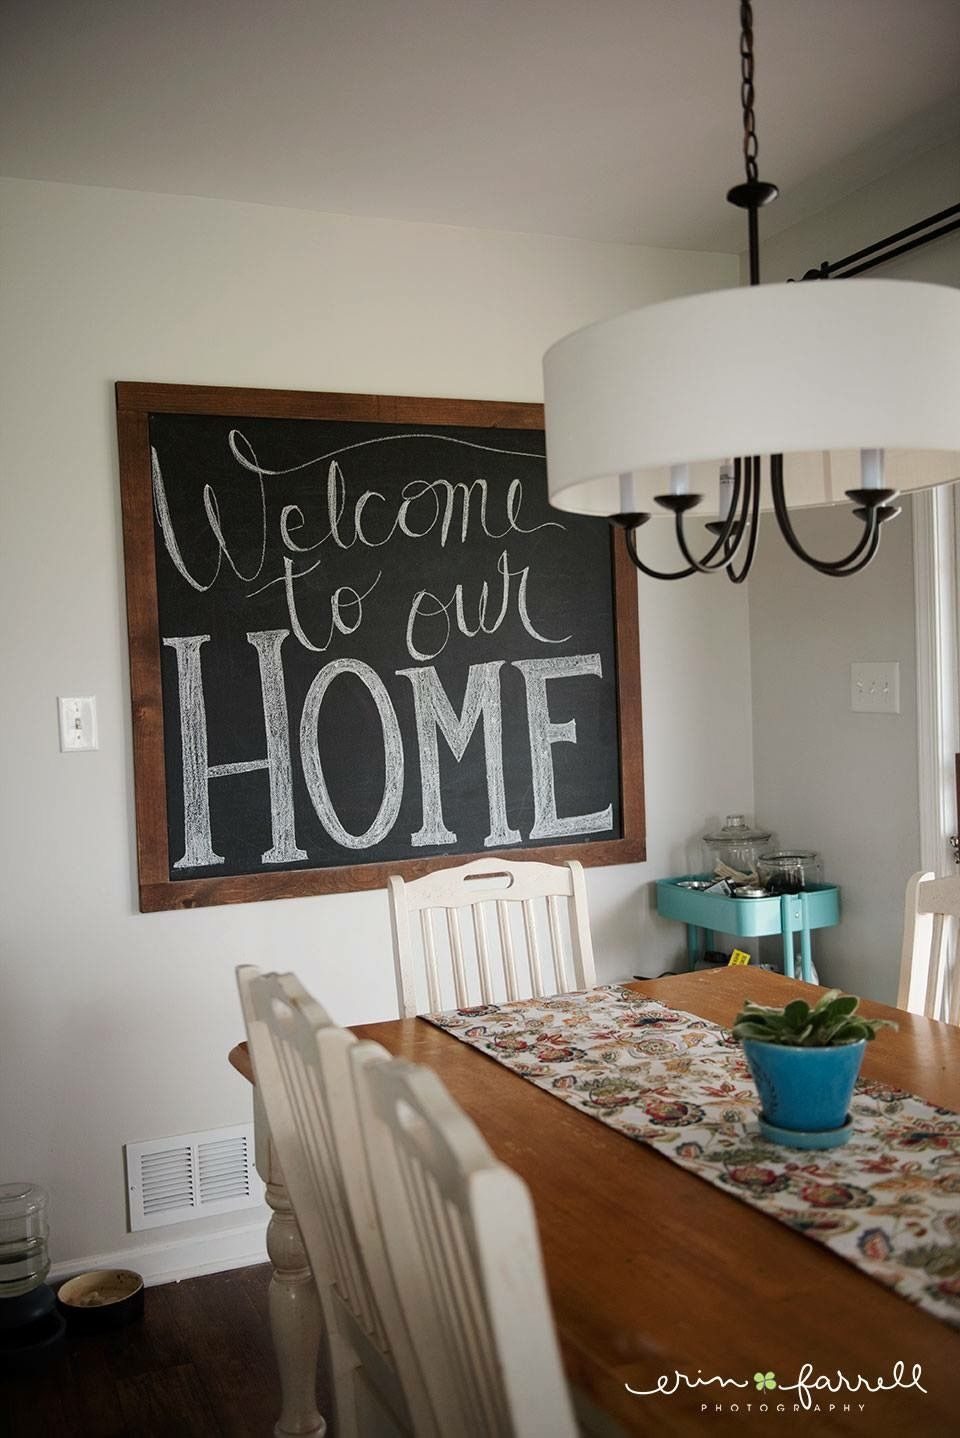 Chalkboard Art Welcome To Our Home Large Chalkboard In Kitchen Chalkboard Quotes Chalkboard Art Kitchen Chalkboard Large Chalkboard